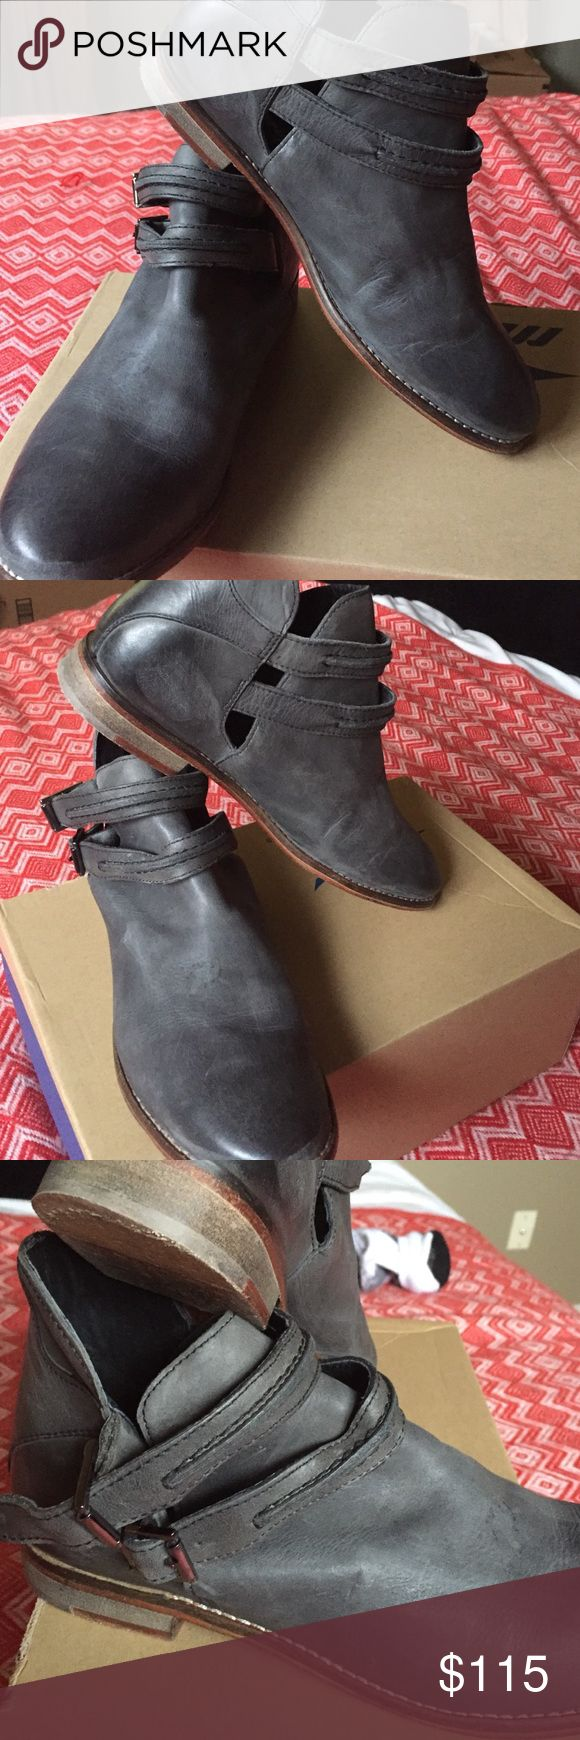 Women's Free People Boot Beautiful Black/Gray Free People Boots. Size 39, I'm a 81/2 or 9 and they fit perfect. Literally worn one time! Free People Shoes Ankle Boots & Booties